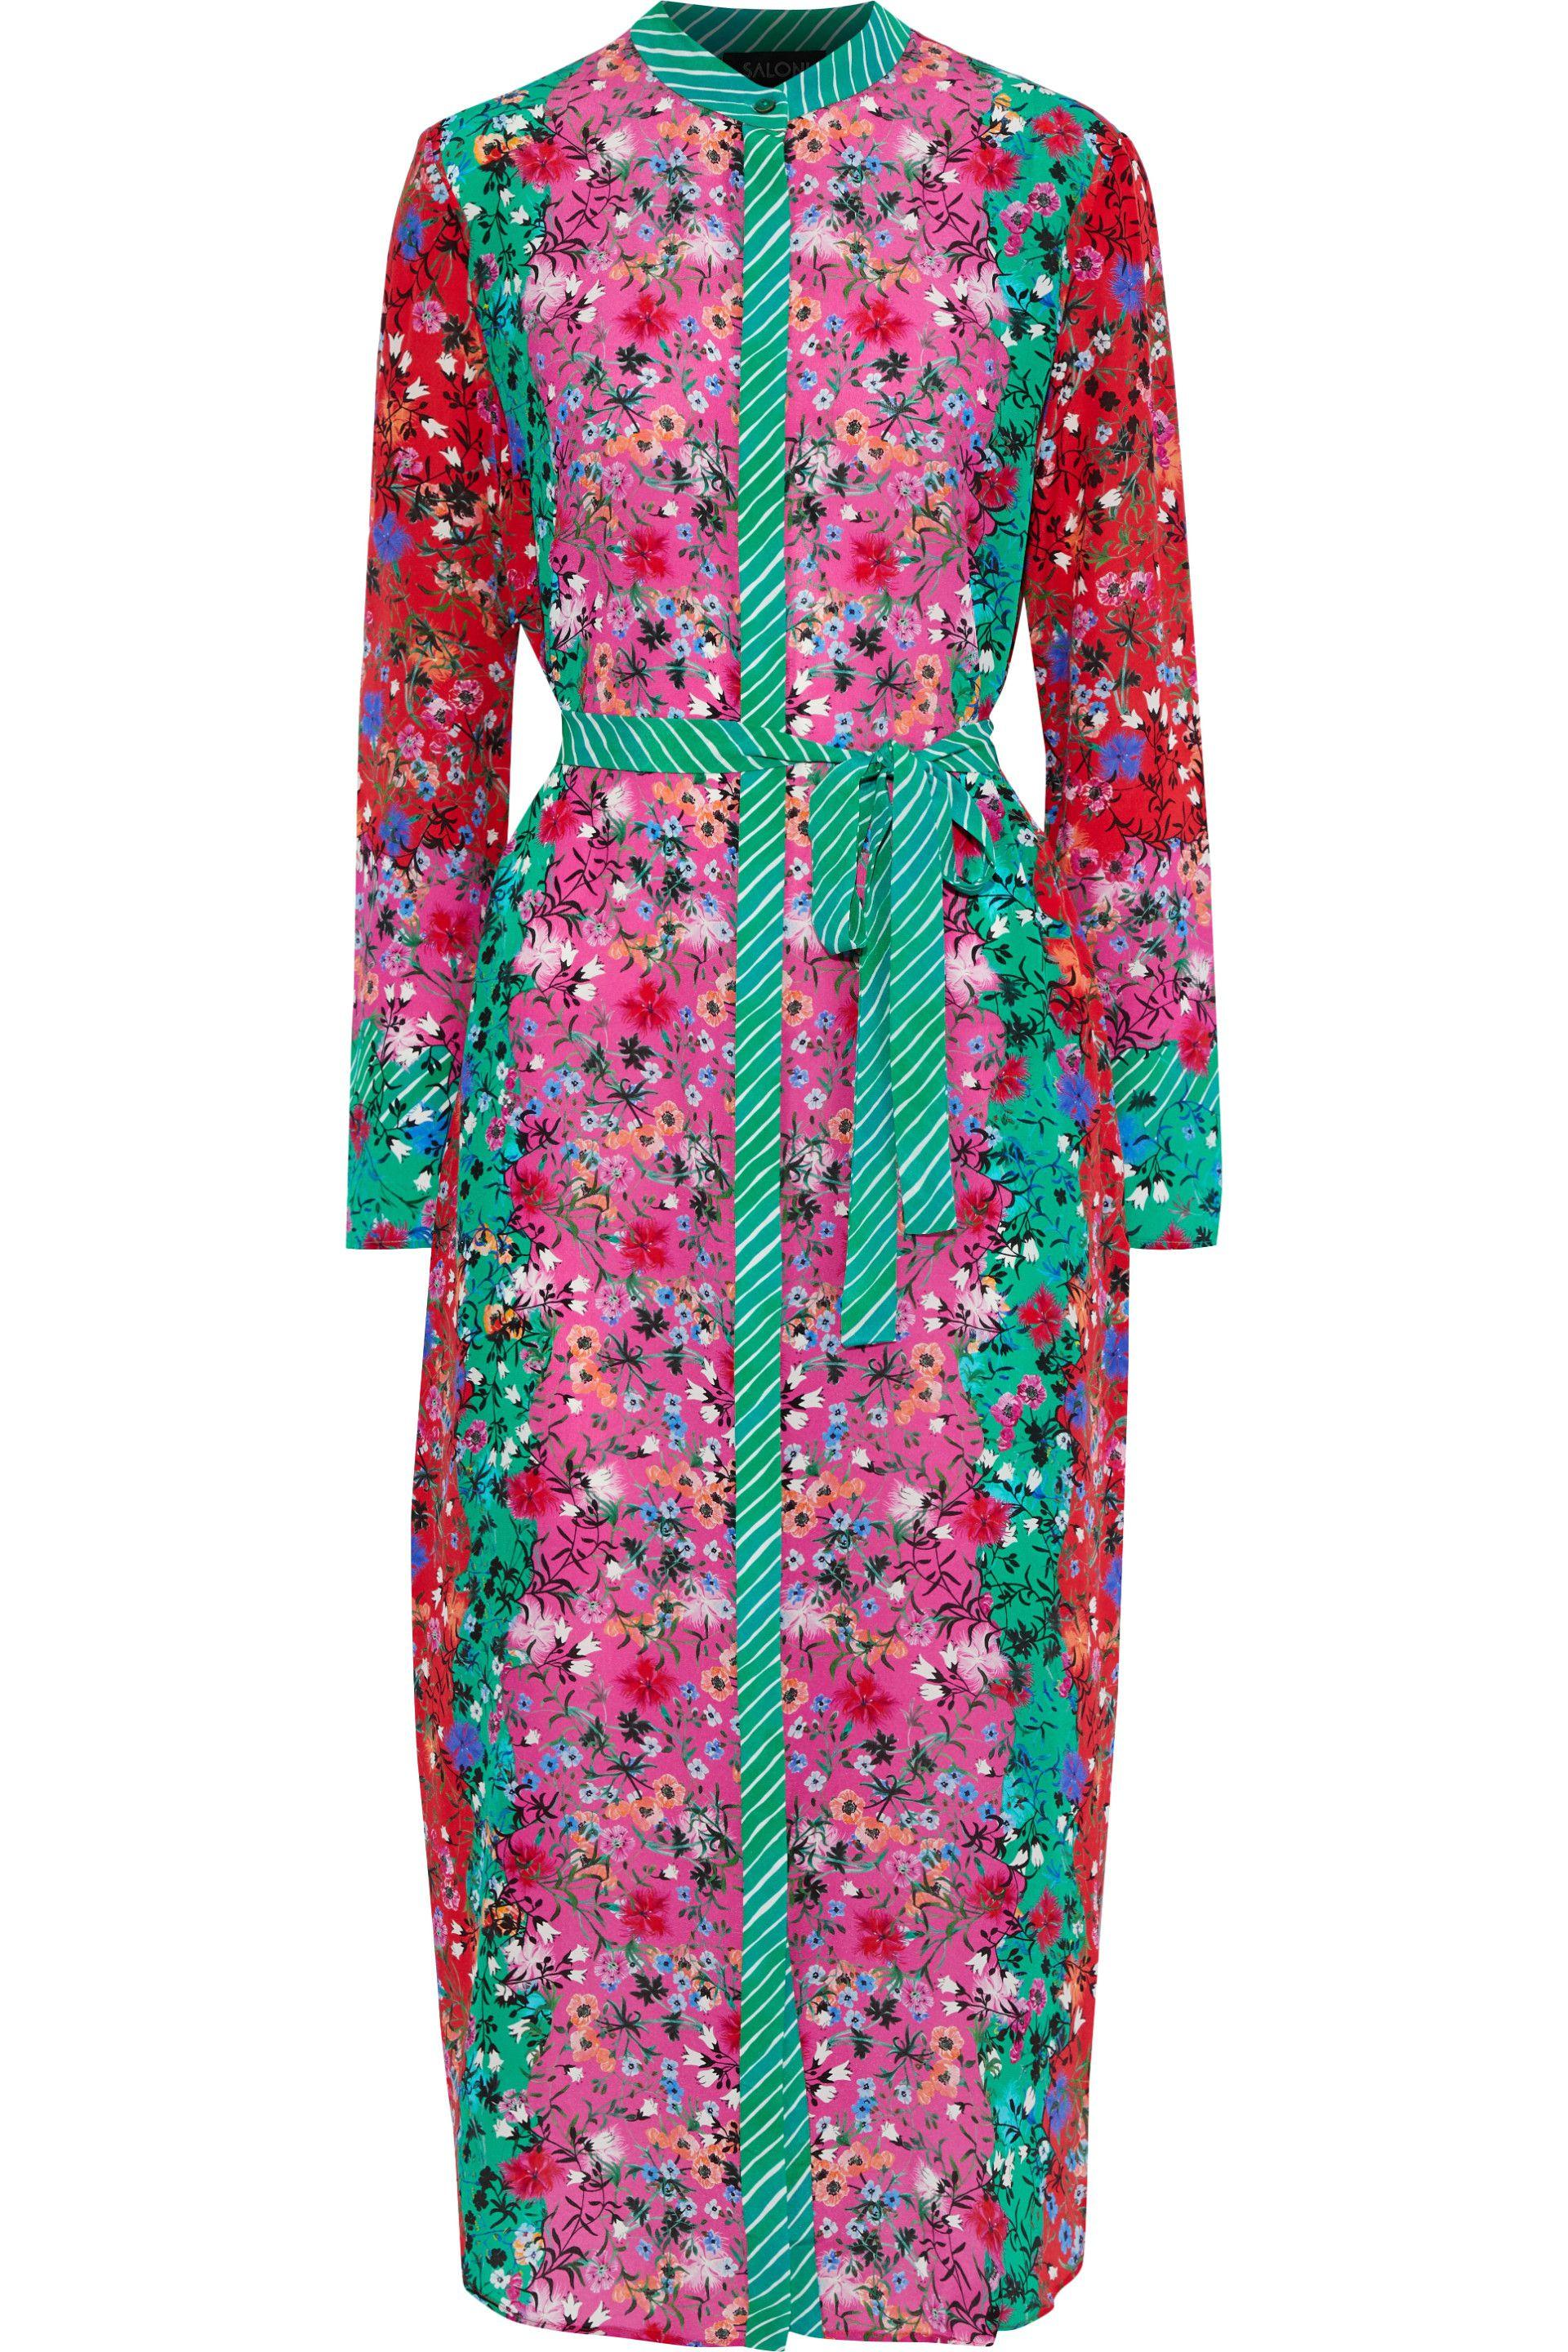 428921f5dc saloni-Multicolor-Woman-Molly-Printed-Silk-Crepe-De-Chine-Midi-Shirt-Dress-Multicolor.jpeg